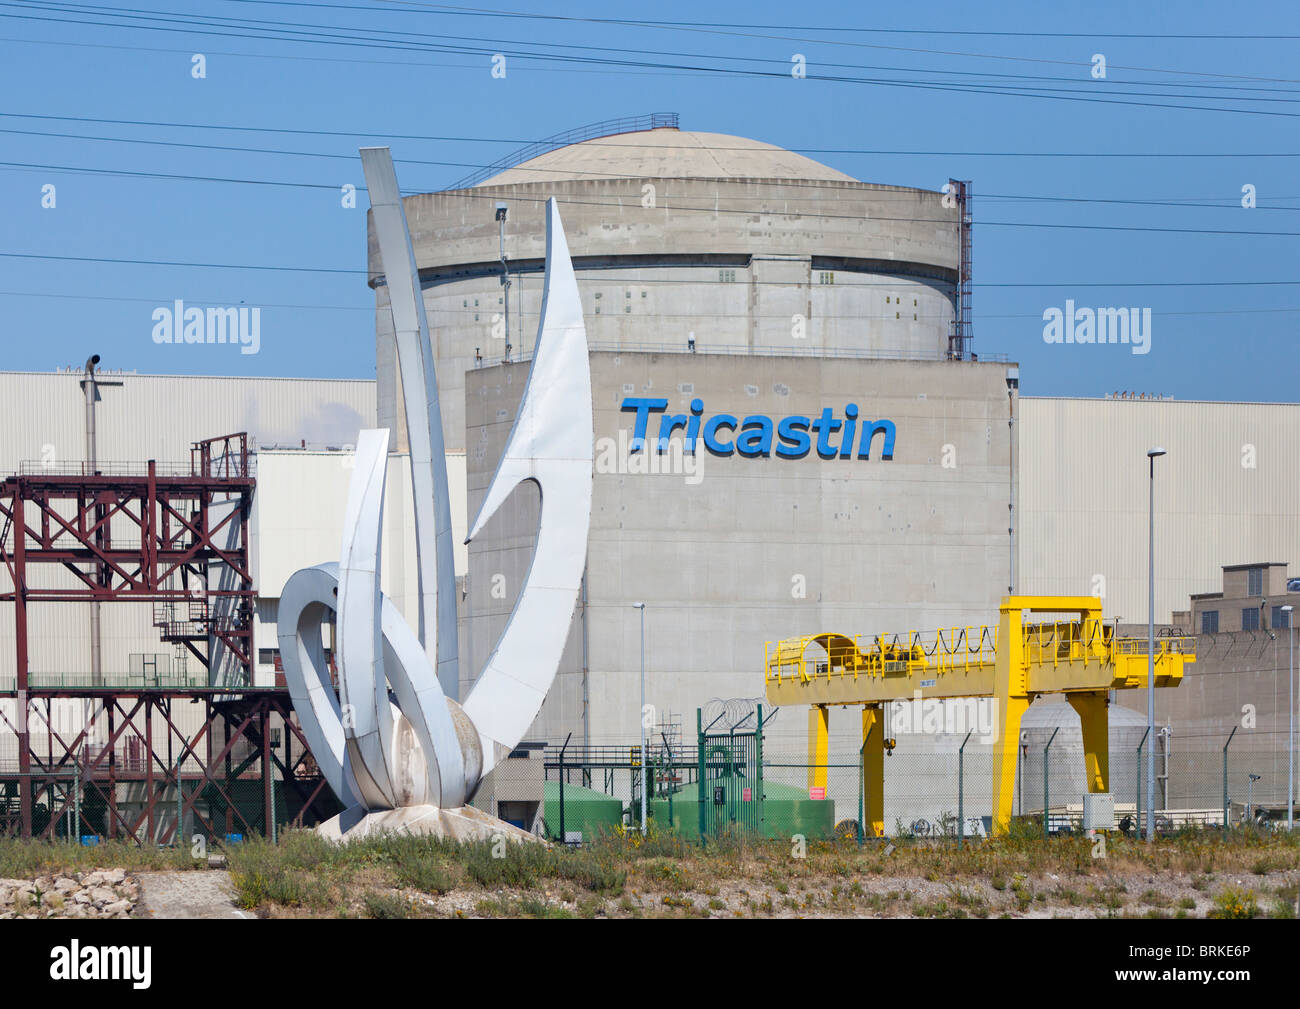 Work of art at nuclear power station in france - Stock Image